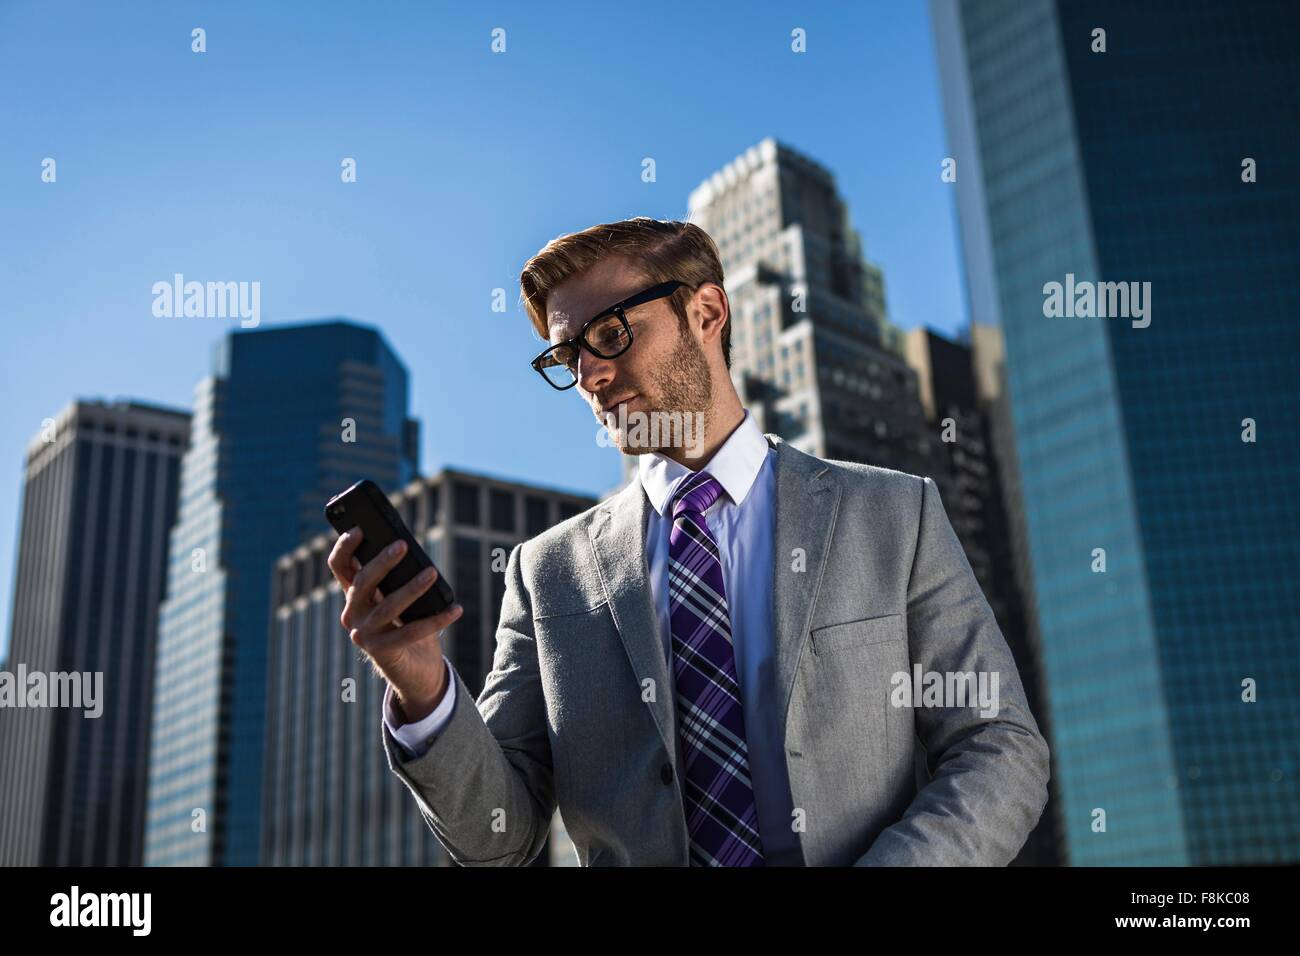 Young businessman in front of office building reading smartphone texts, New York, USA - Stock Image